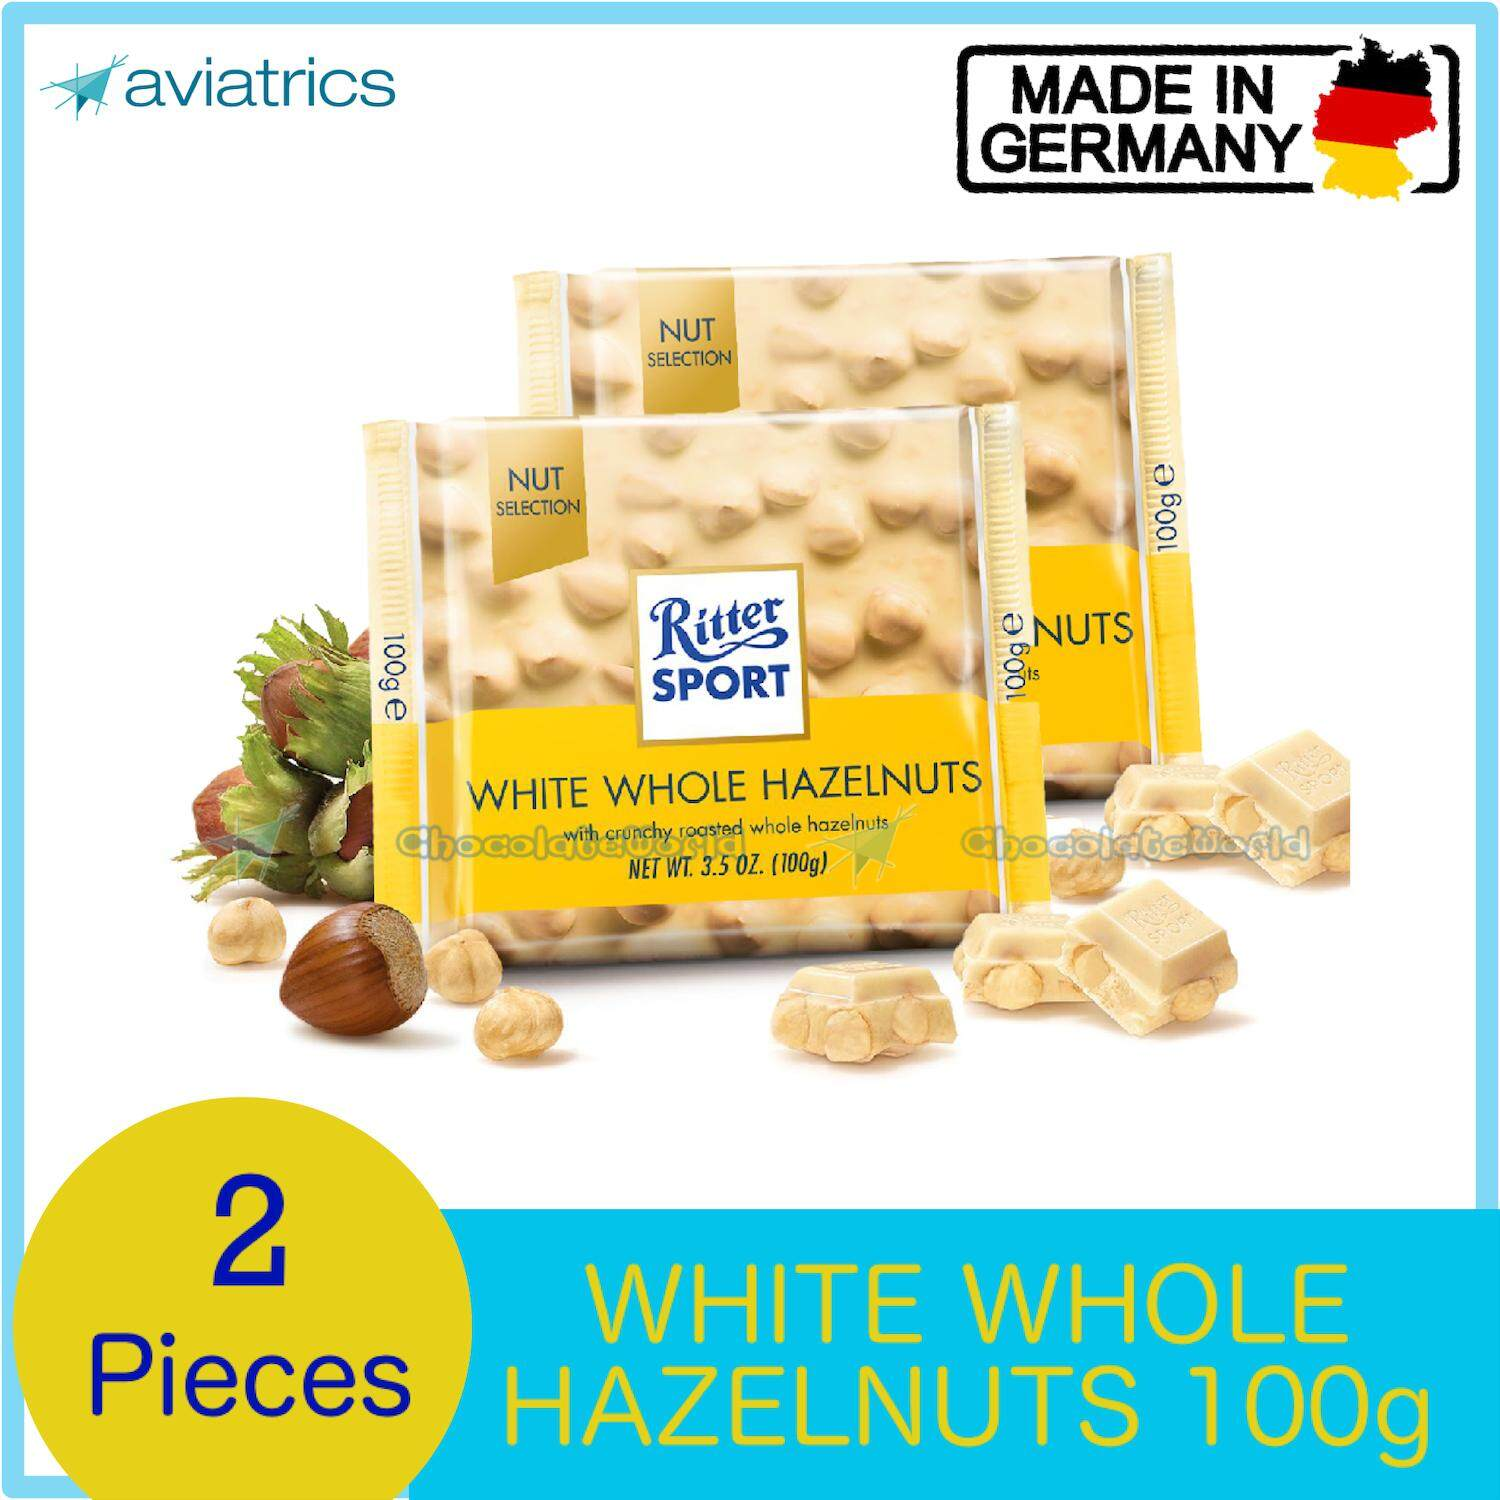 Ritter Sport White Whole Hazelnuts 100g X 2 (Made in Germany)